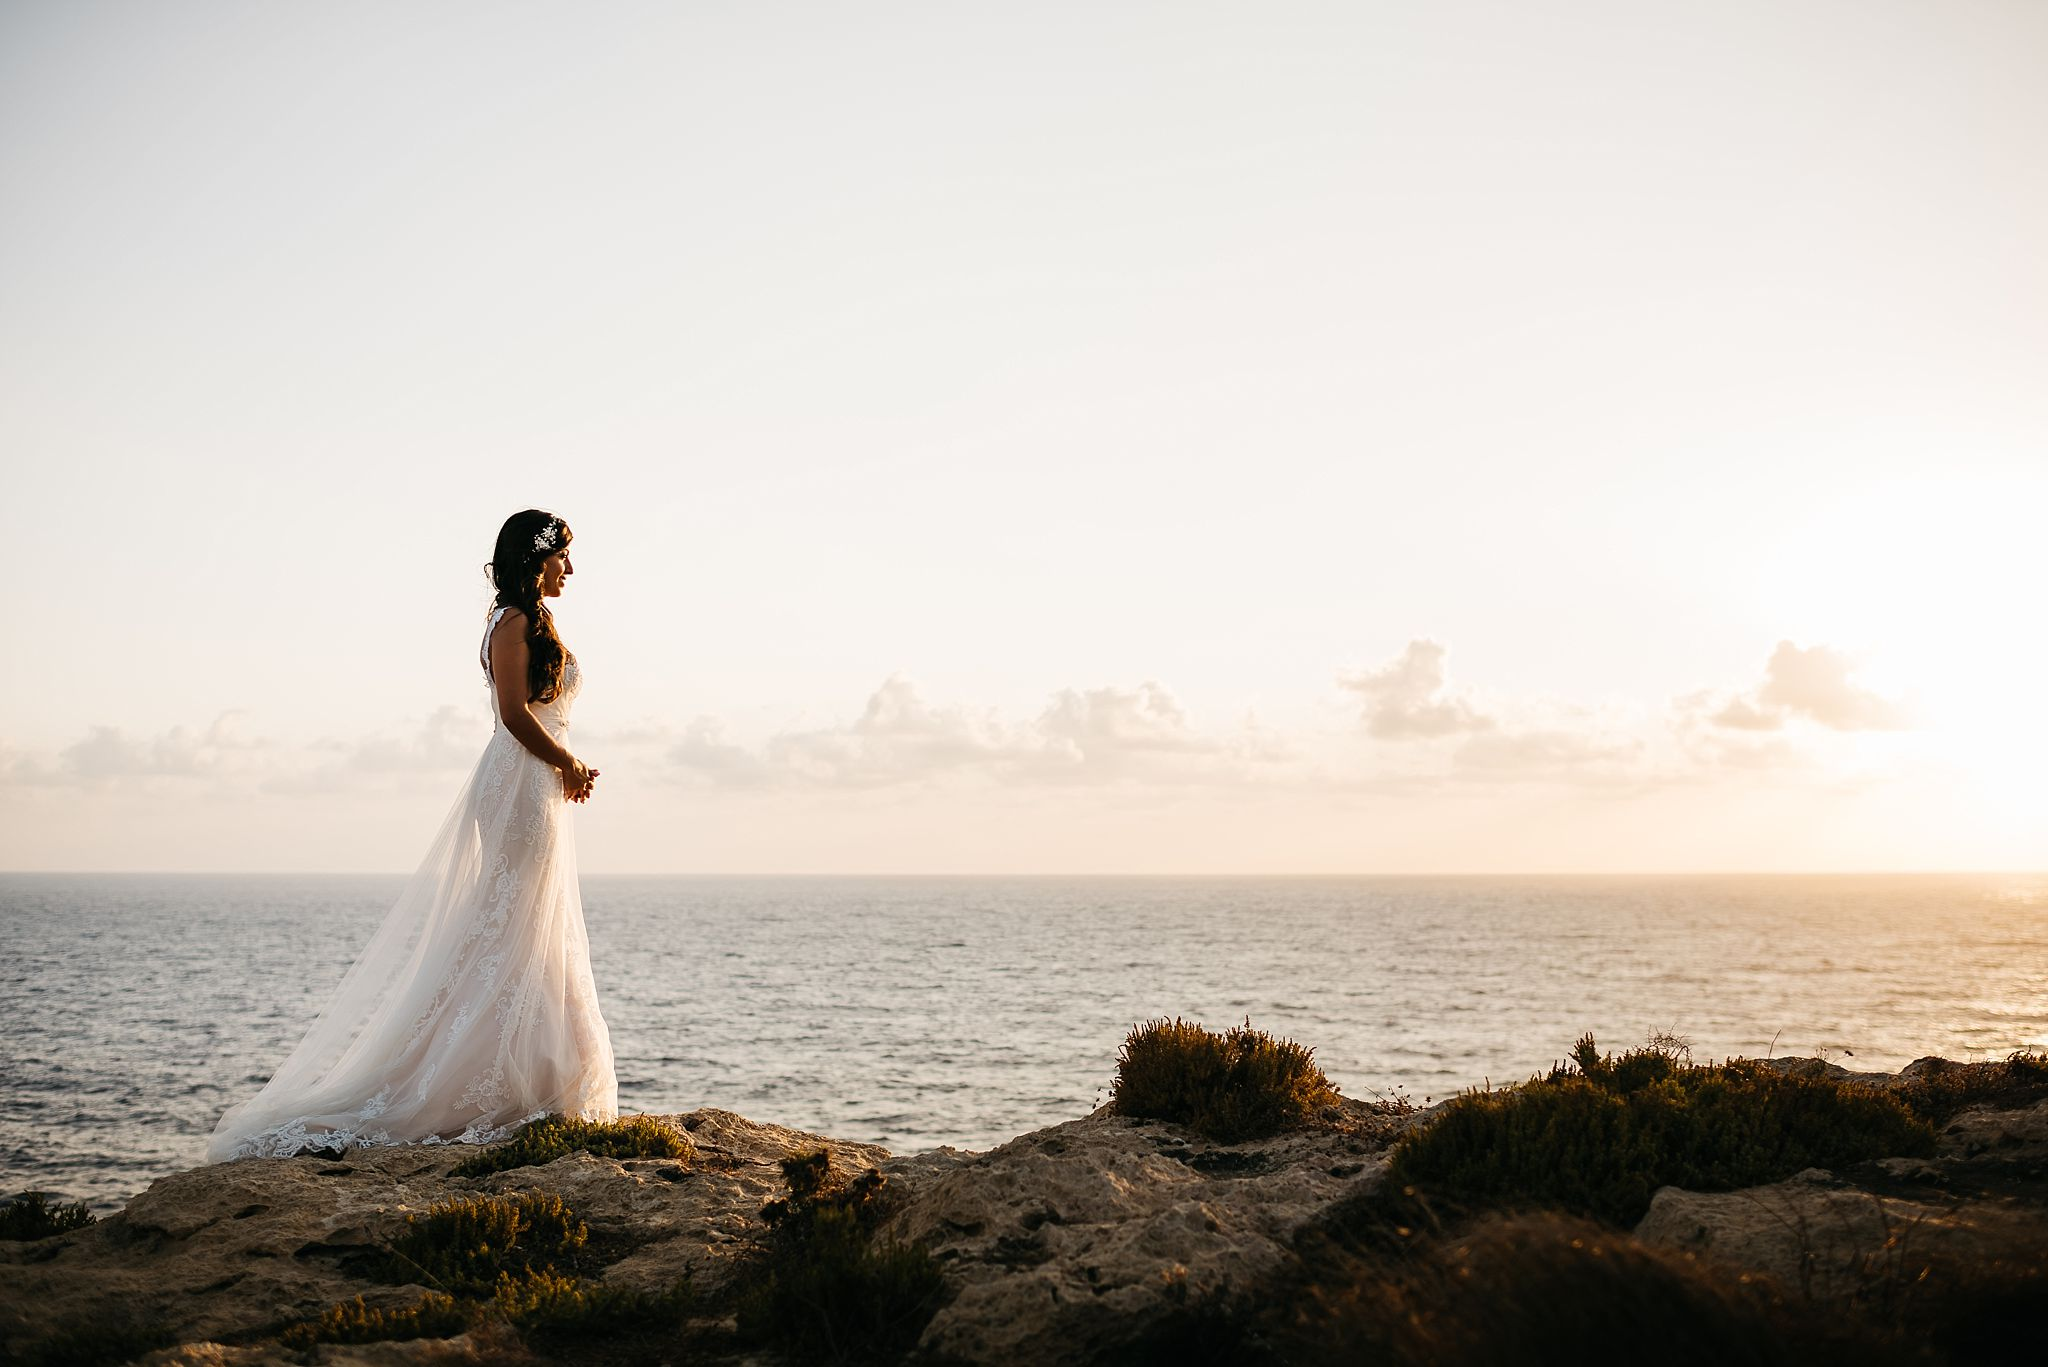 Thea & Philip | Corinthia St.George | Wedding Photography Malta | Shane P. Watts